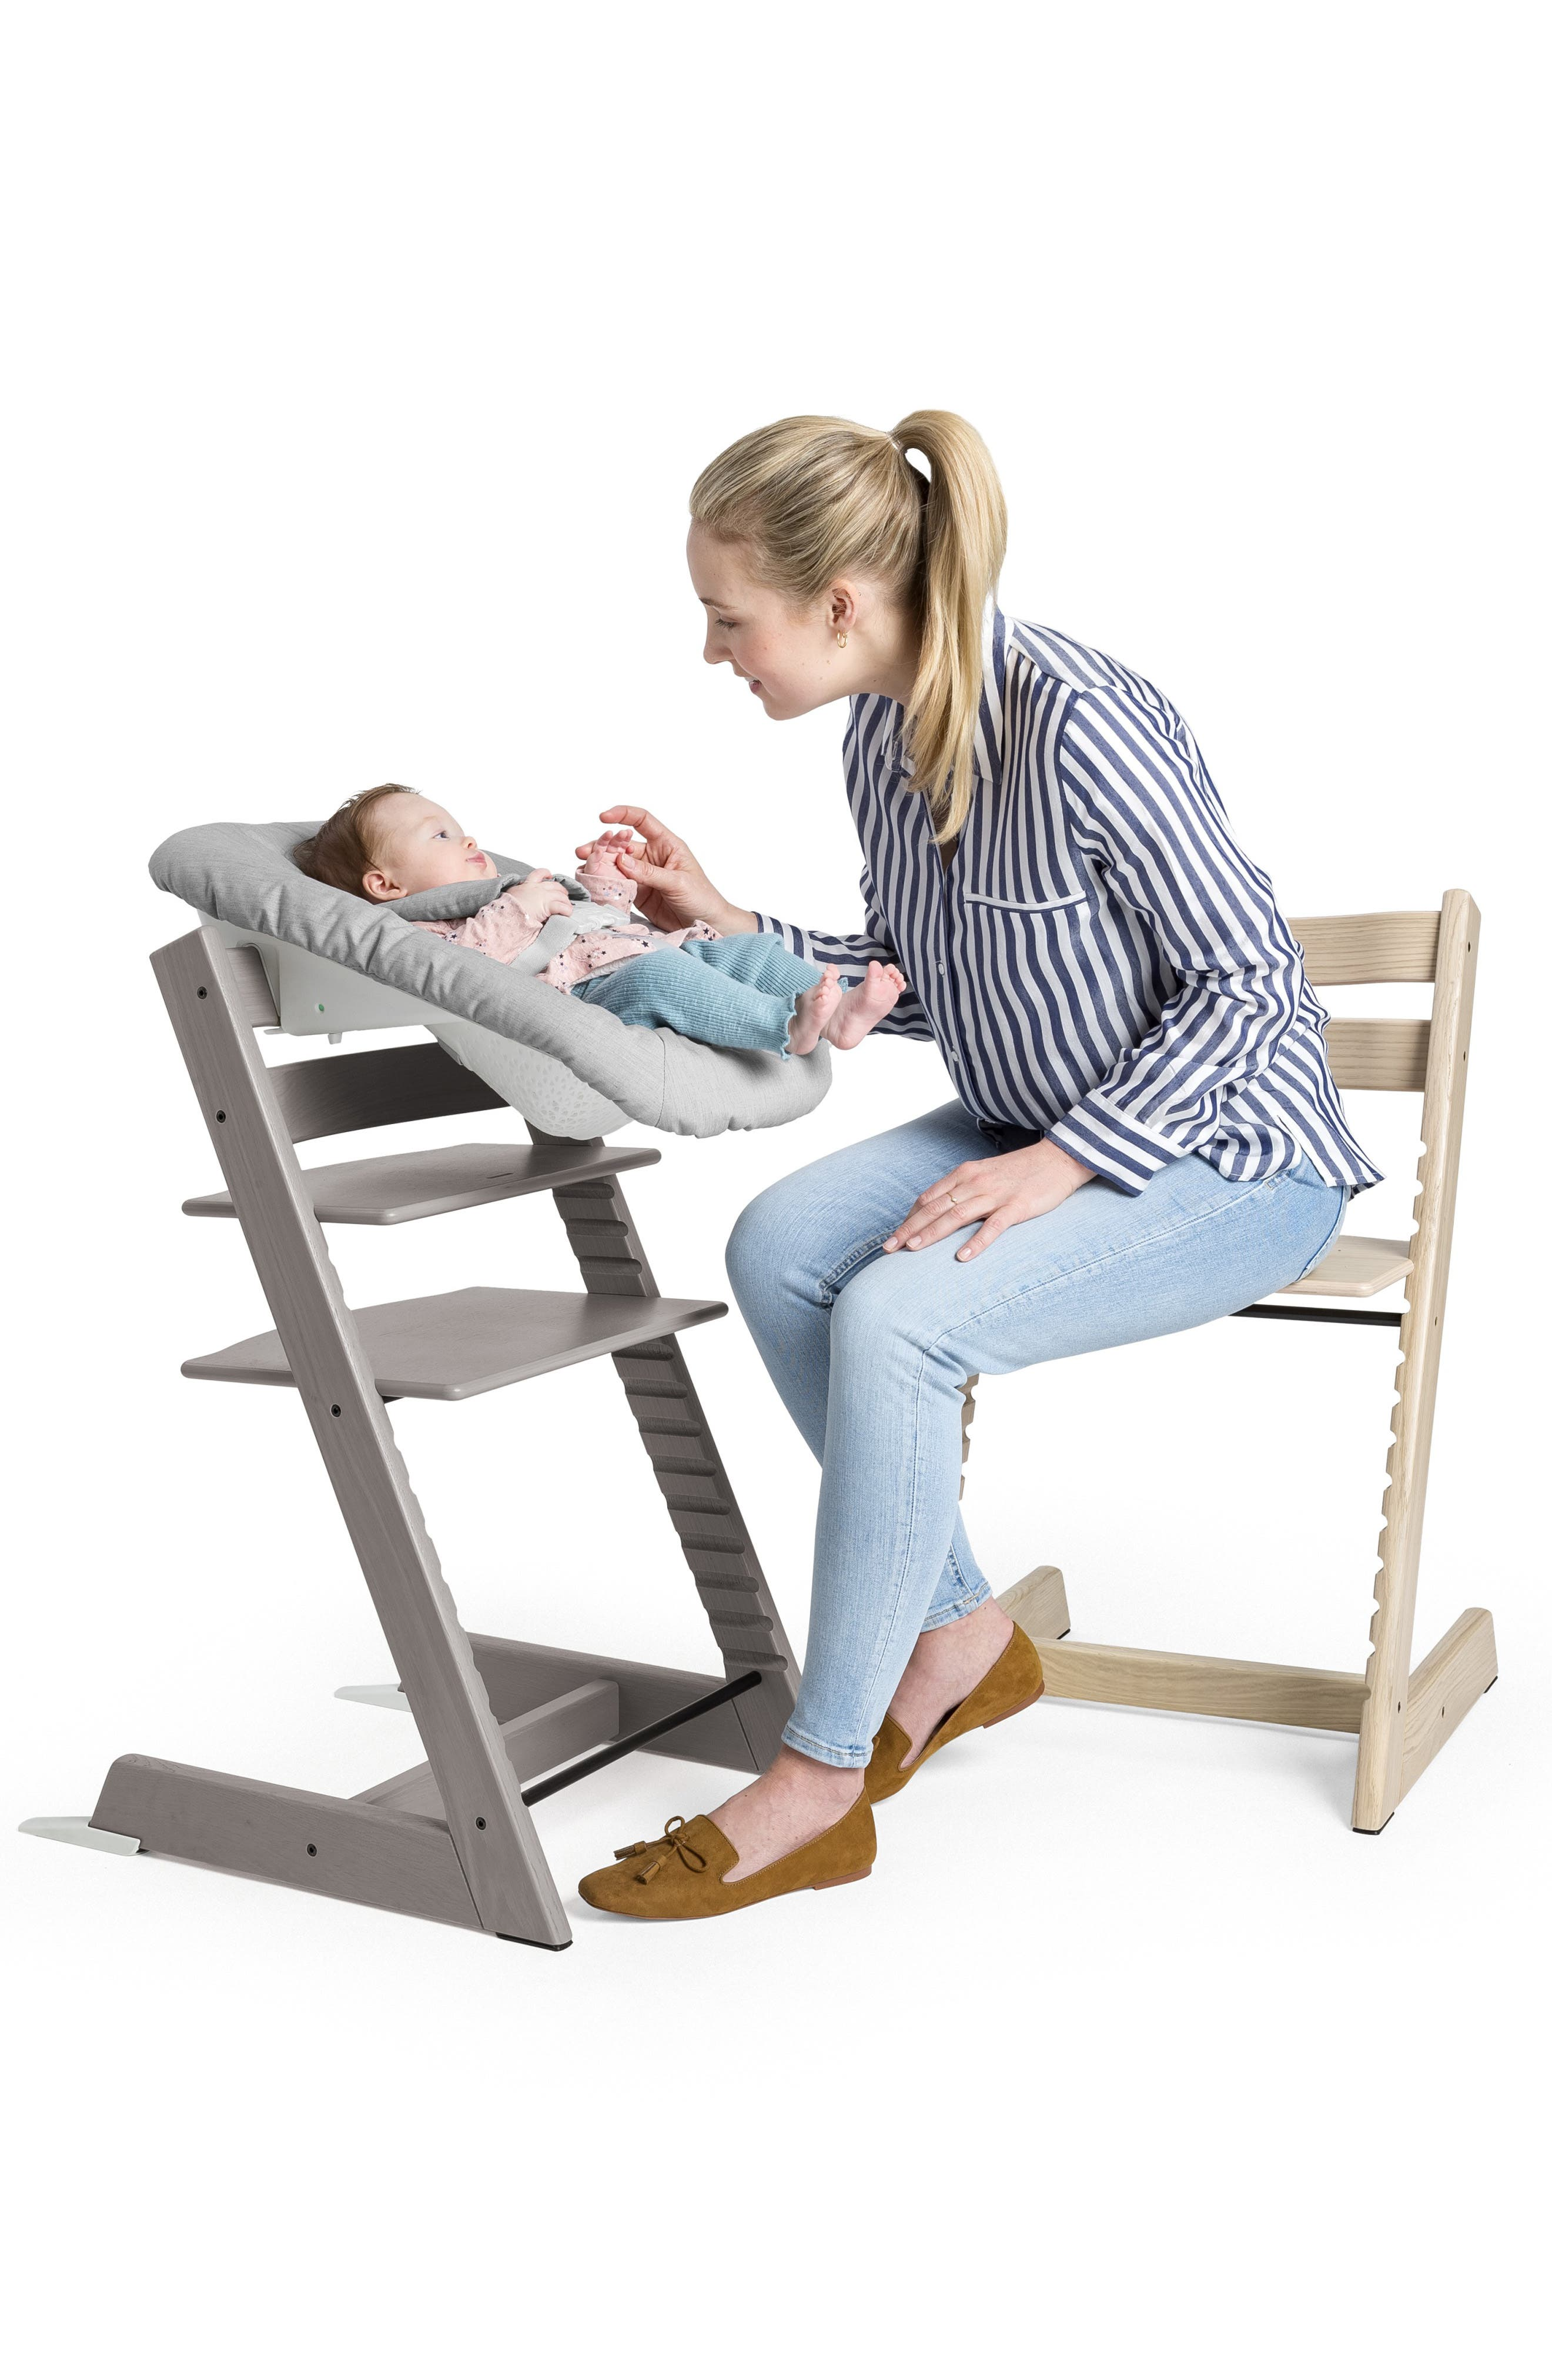 STOKKE,                              Tripp Trapp<sup>®</sup> Newborn Set,                             Alternate thumbnail 4, color,                             GREY